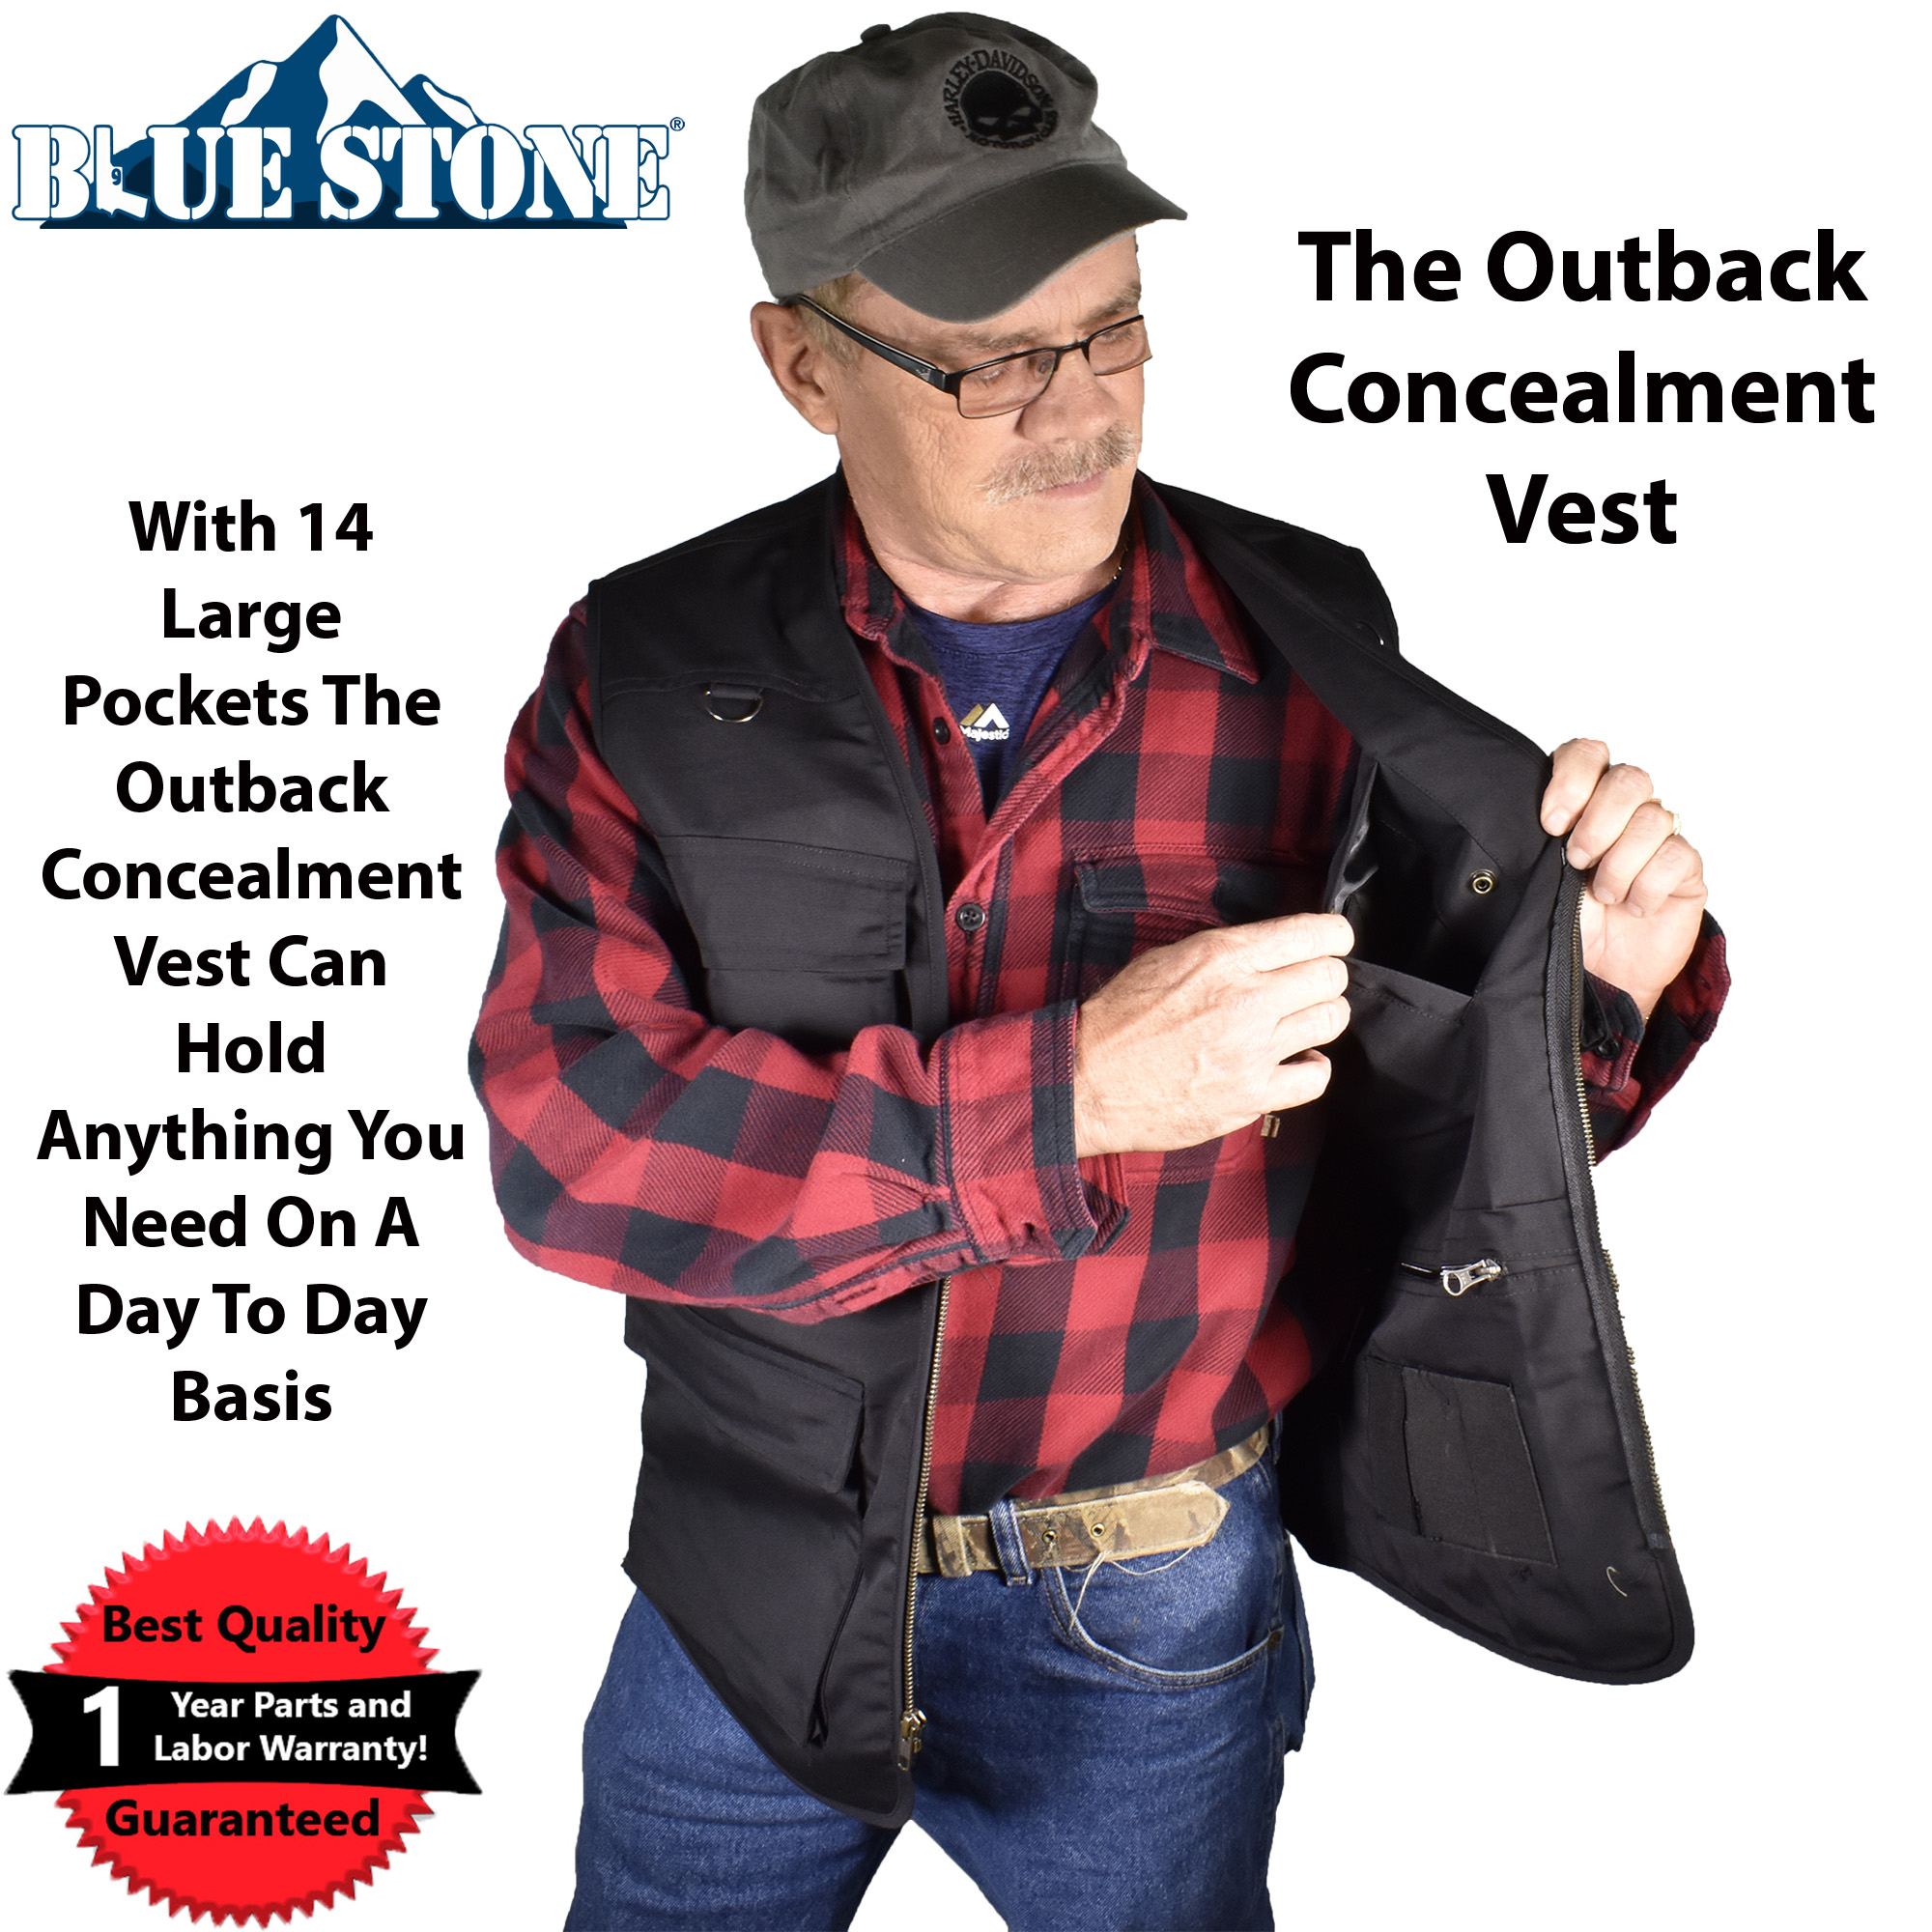 Blue Stone Safety Products Outback Concealment Vest| CCW Vest| Travel Vest| Concealed Carry Vest| Photography Vest|... by Supplier Generic